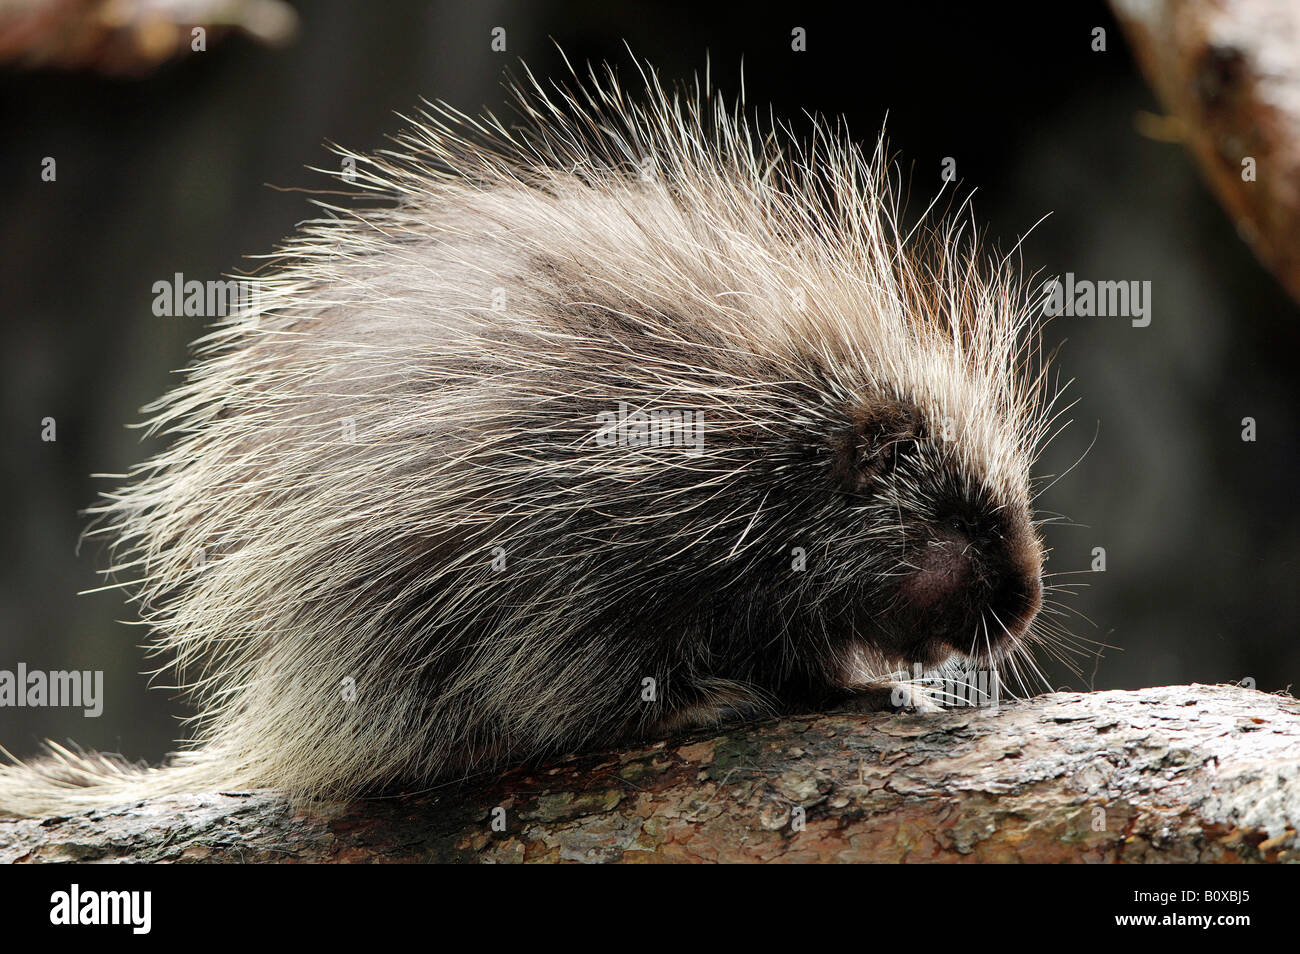 North American porcupine (Erethizon dorsatum), on branch Stock Photo